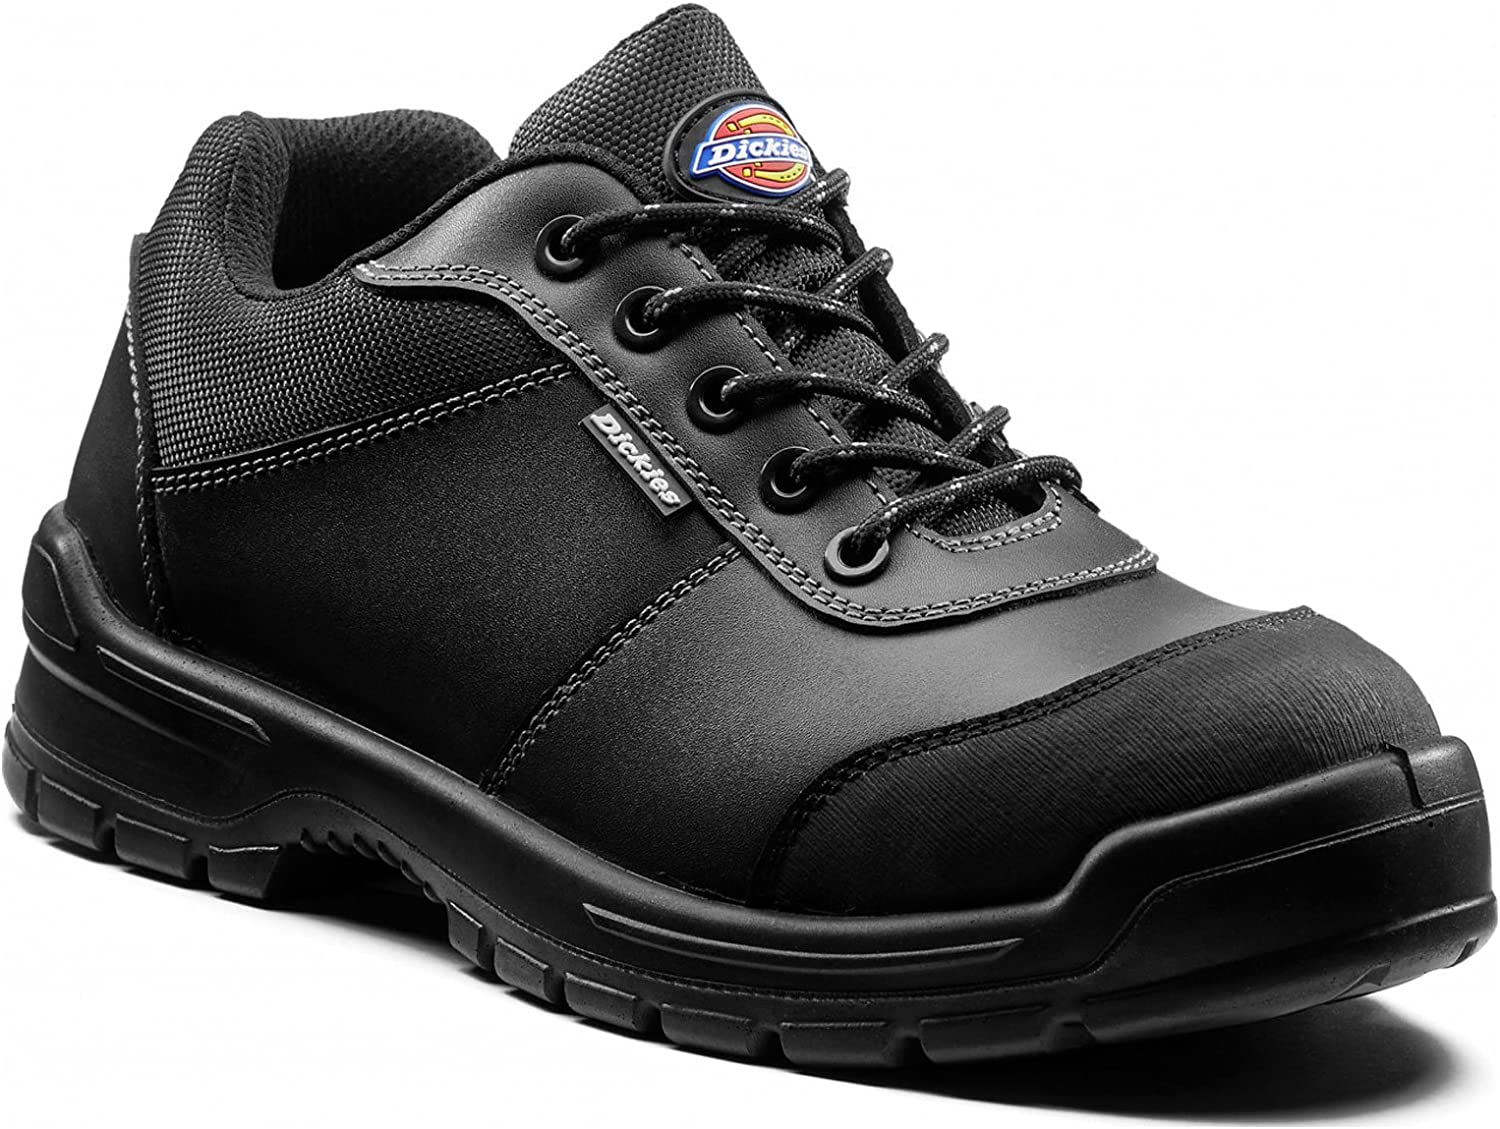 Dickies Andover shoes Black Size 13